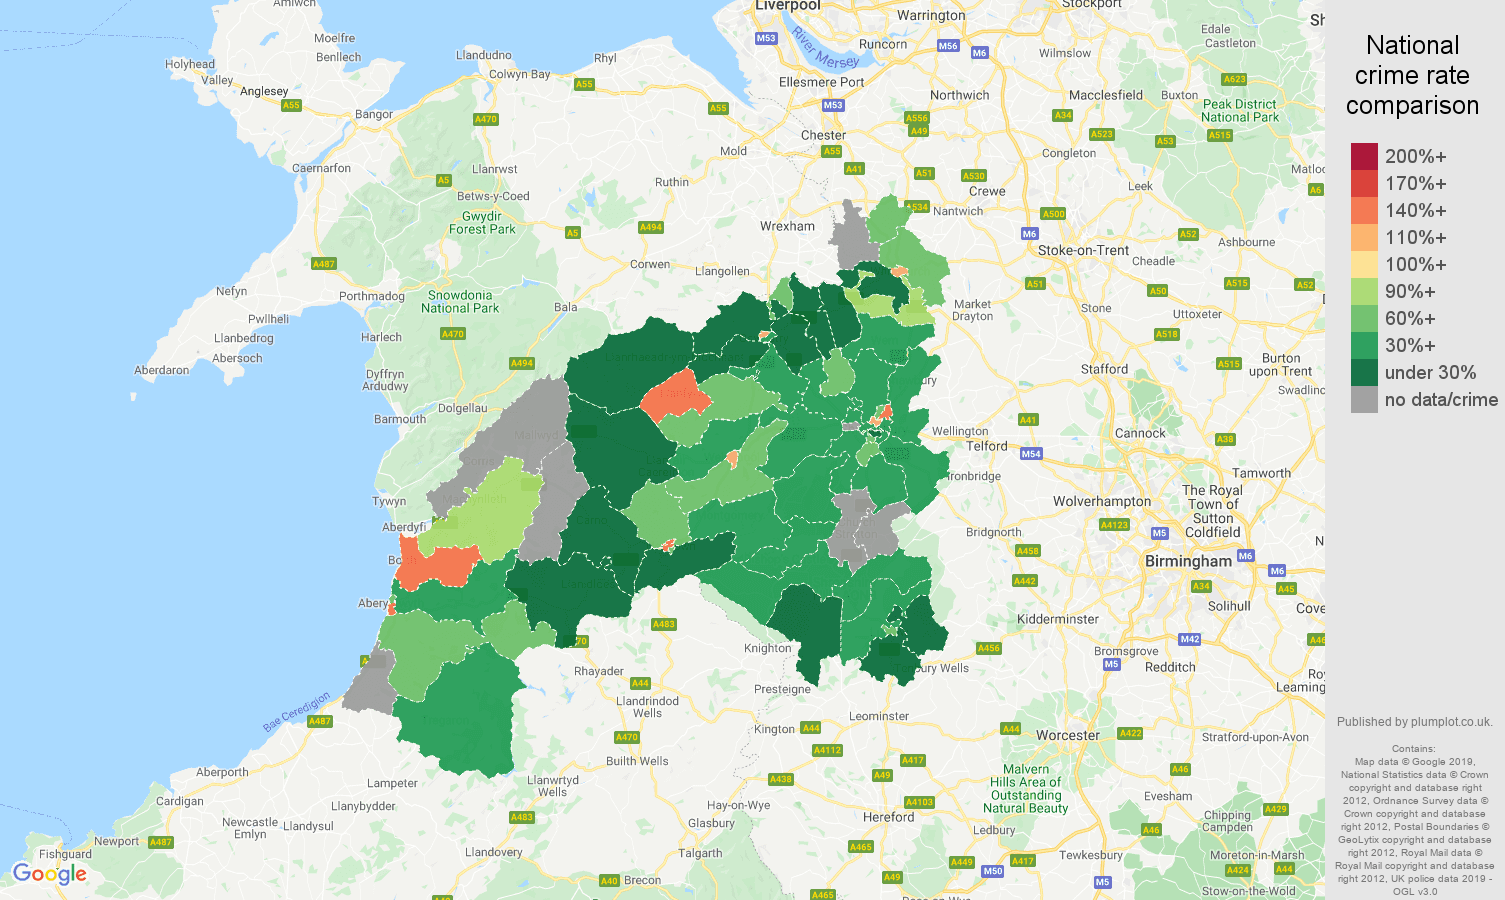 Shrewsbury other crime rate comparison map